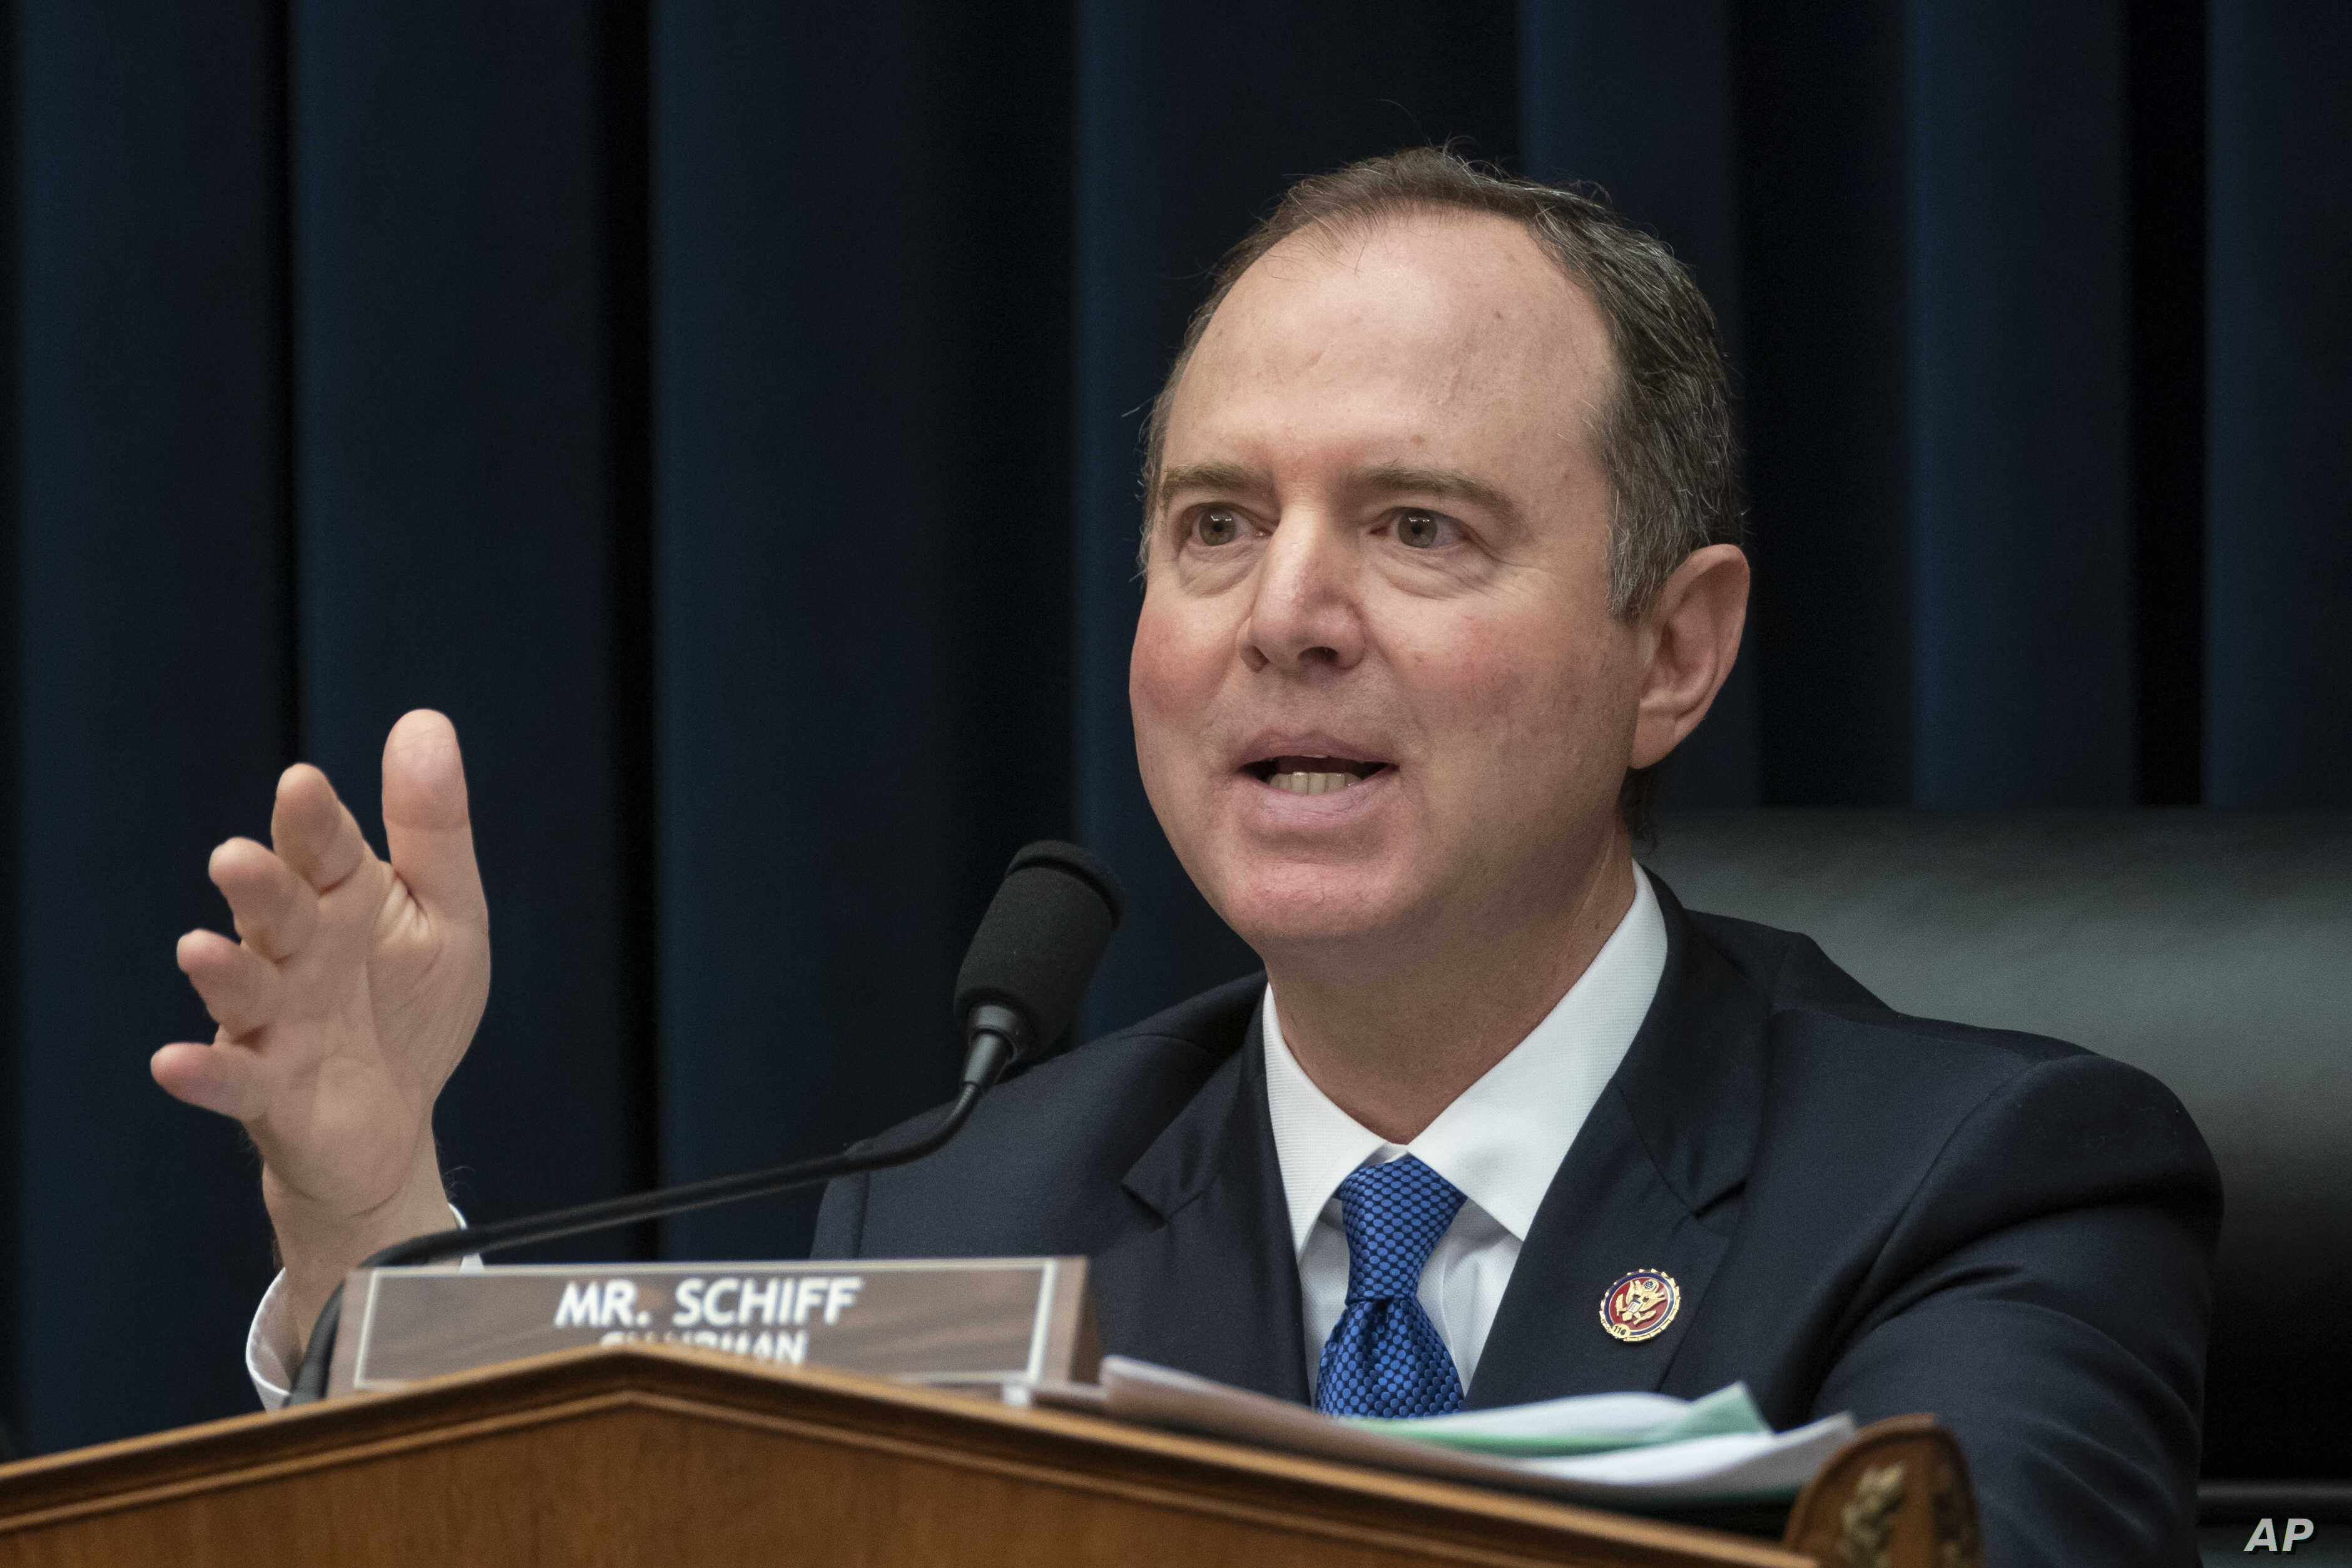 """House Intelligence Committee Chairman Adam Schiff, D-Calif., pushes ahead with their oversight of the Trump administration at a hearing to examine """"Putin's Playbook,"""" how the Russian government works to undermine its adversaries, especially the U.S.,"""